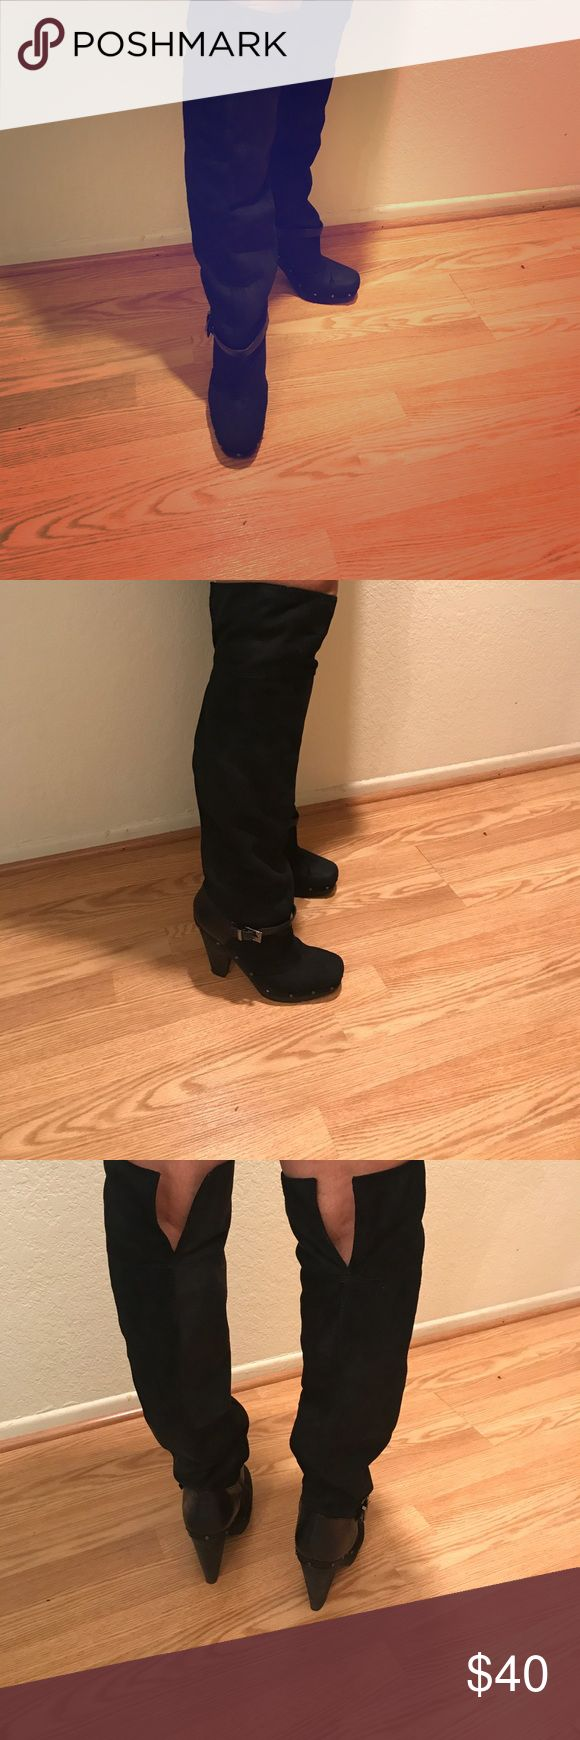 Rachel Roy over the knee boots Black Suede Over the Knee Boot with silver buckle only worn a few times RACHEL Rachel Roy Shoes Over the Knee Boots